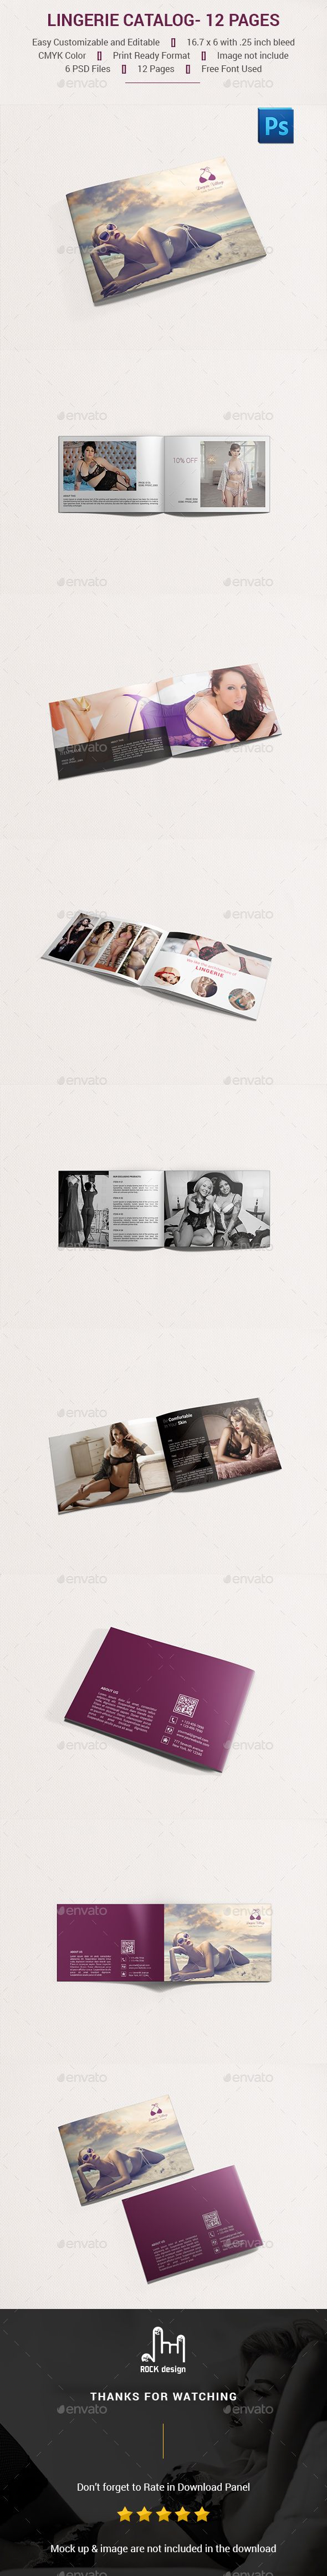 Lingerie #Catalog- 12 Pages - Catalogs Brochures.Download here: http://graphicriver.net/item/lingerie-catalog-12-pages/16427864?ref=arroganttype